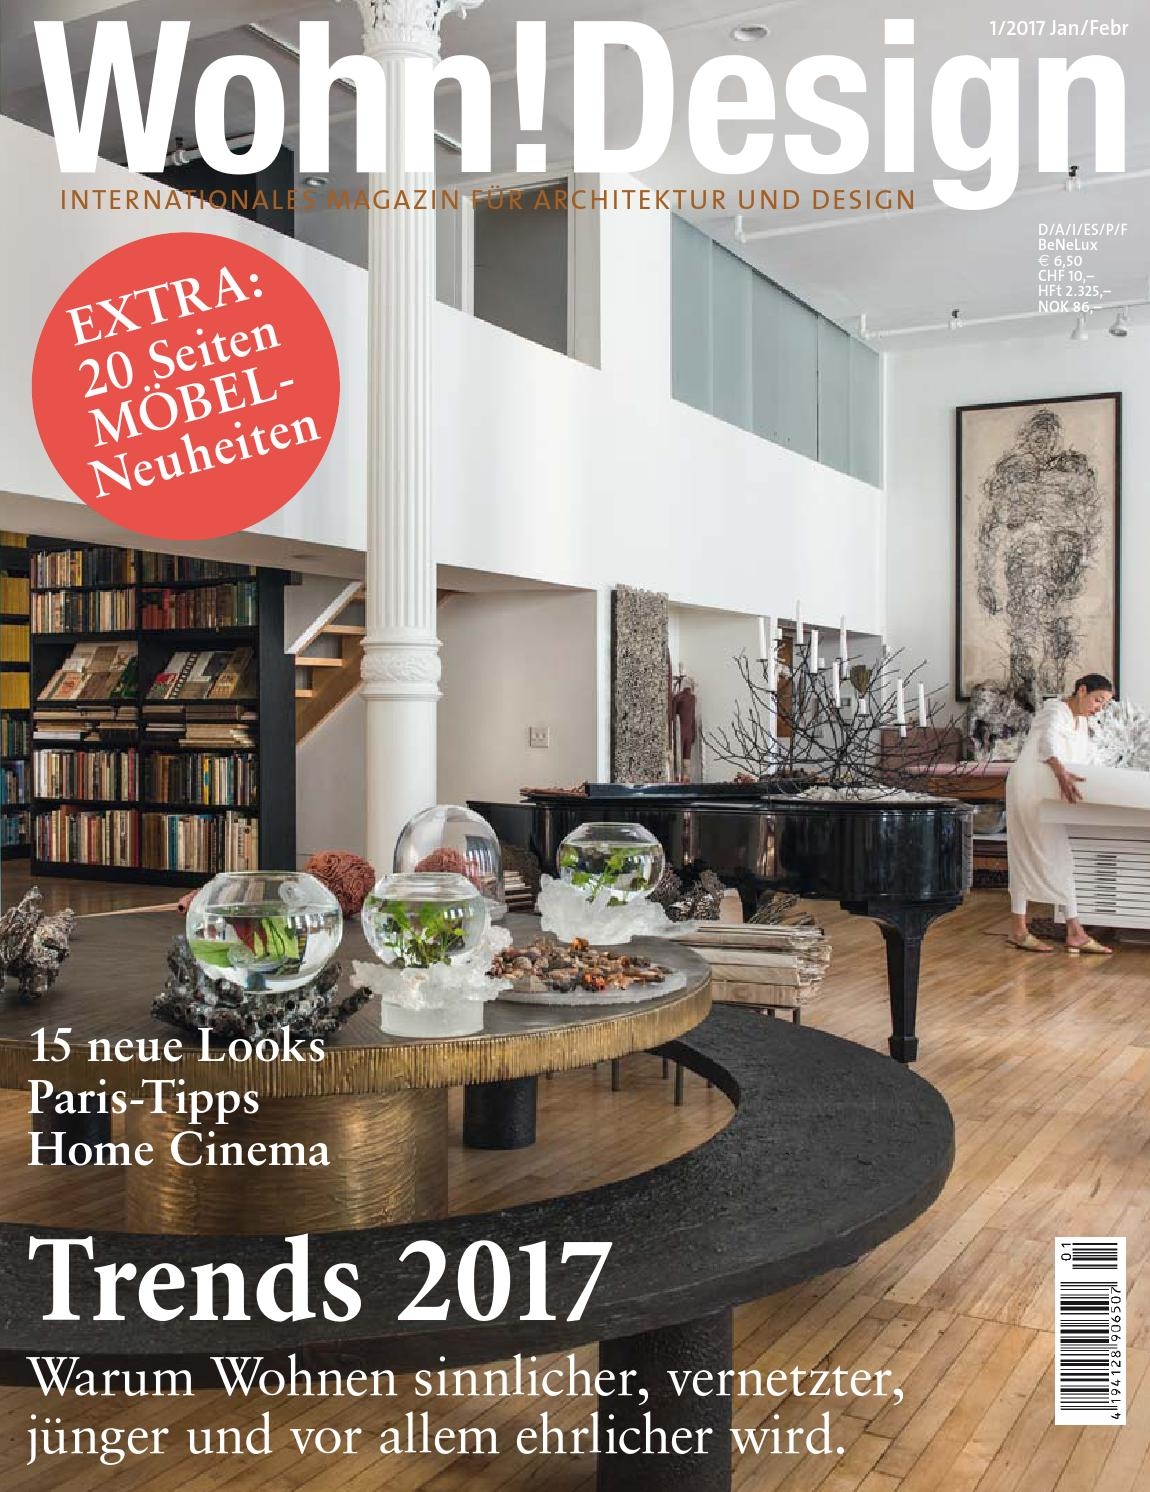 Wohn!Design 1/2017 by Wohn!Design - issuu